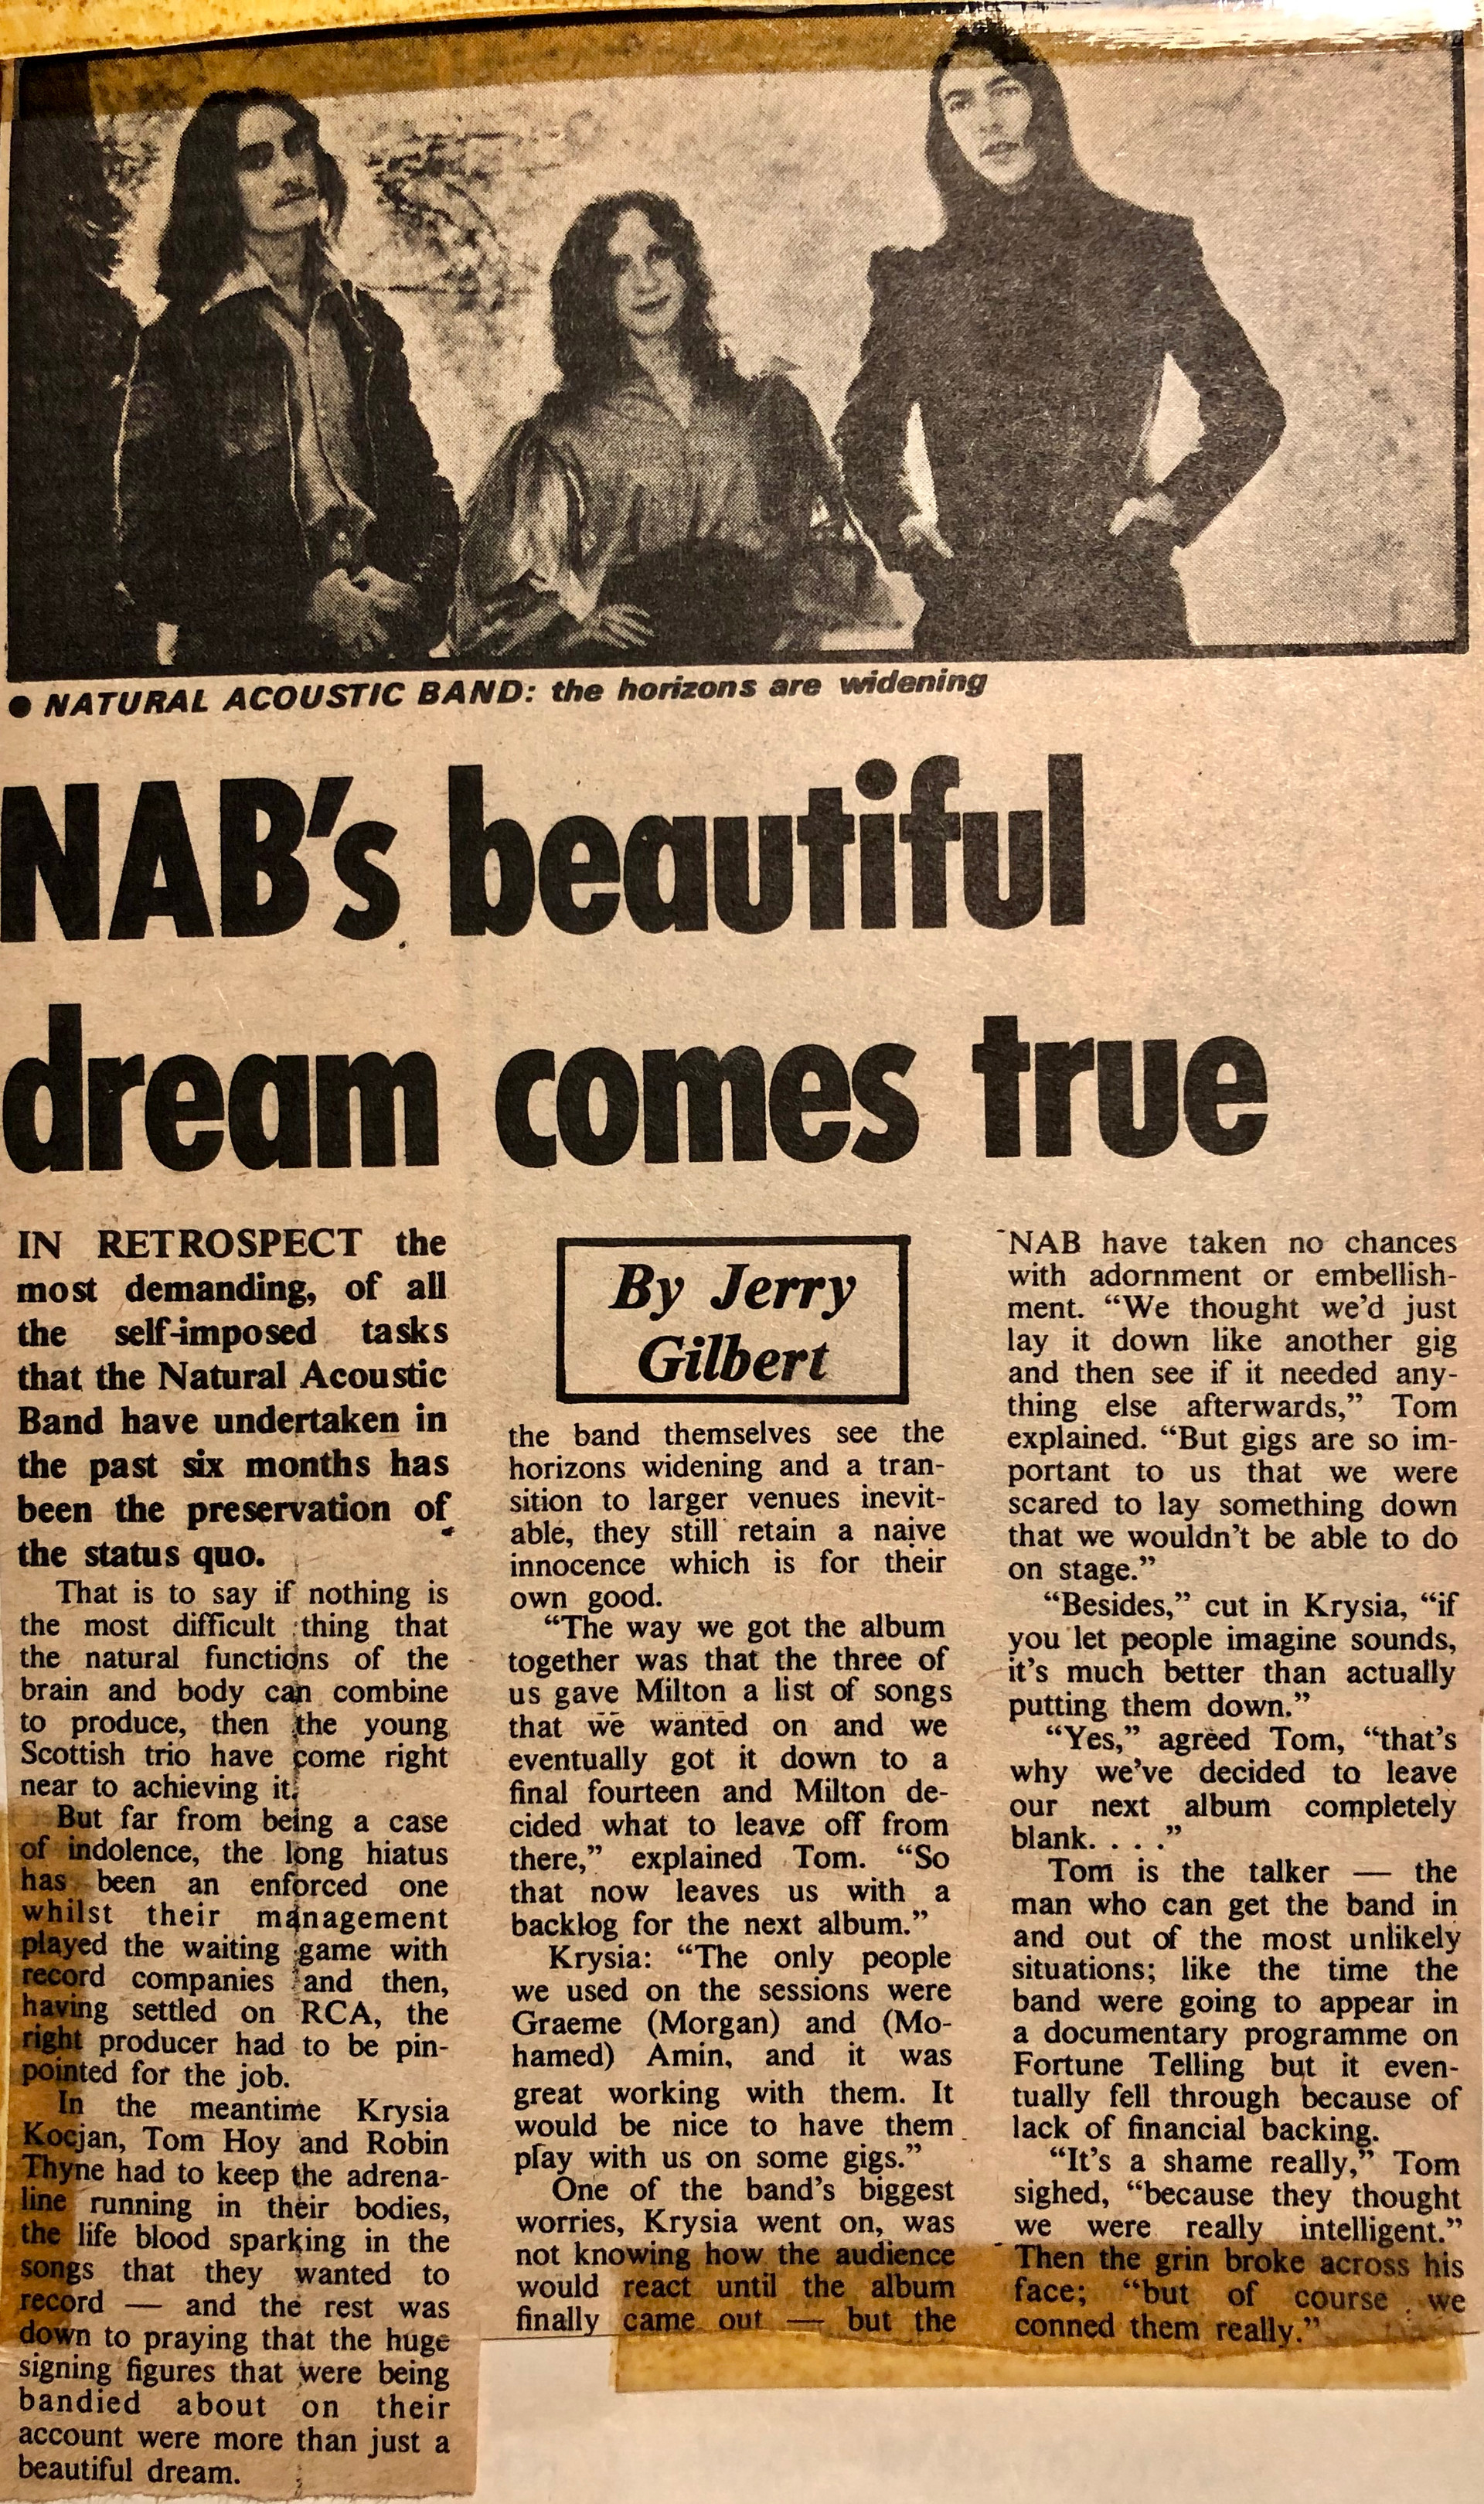 NABs beautiful dream comes true